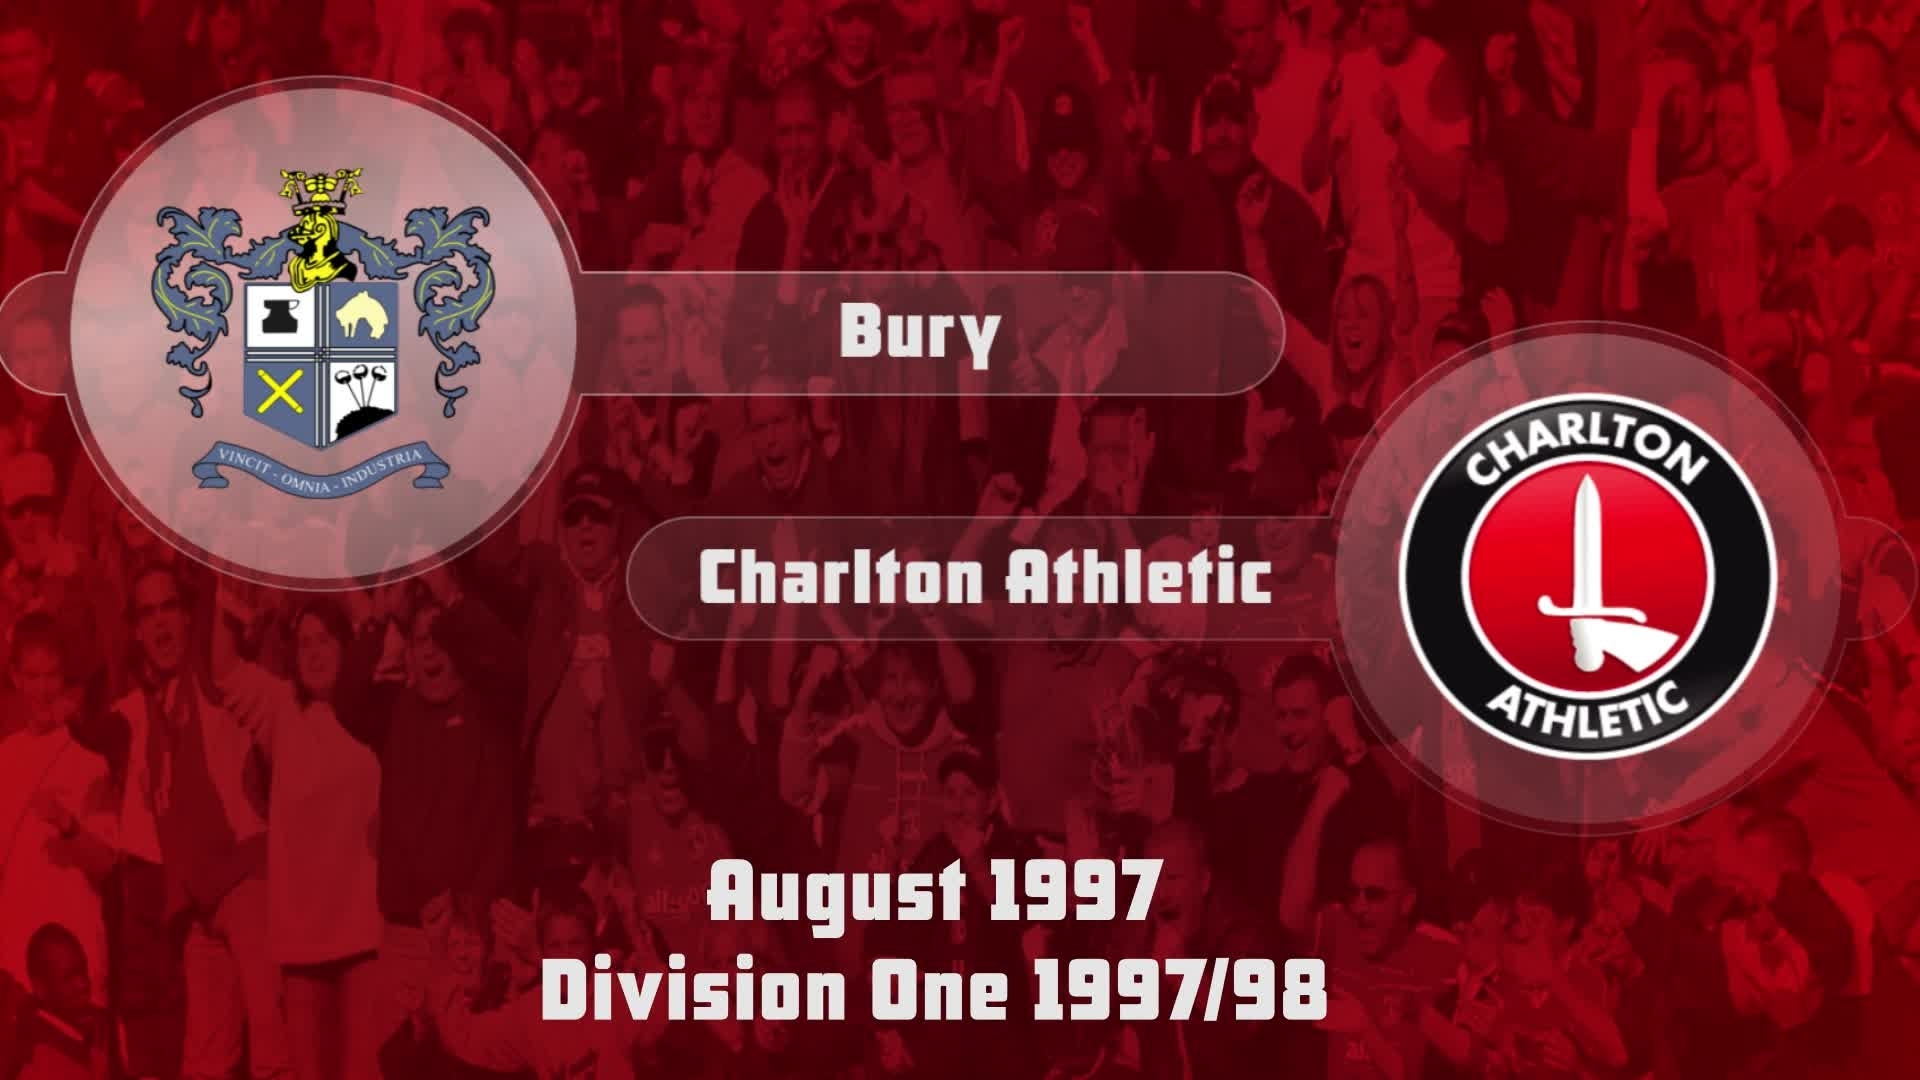 04 HIGHLIGHTS | Bury 0 Charlton 0 (Aug 1997)